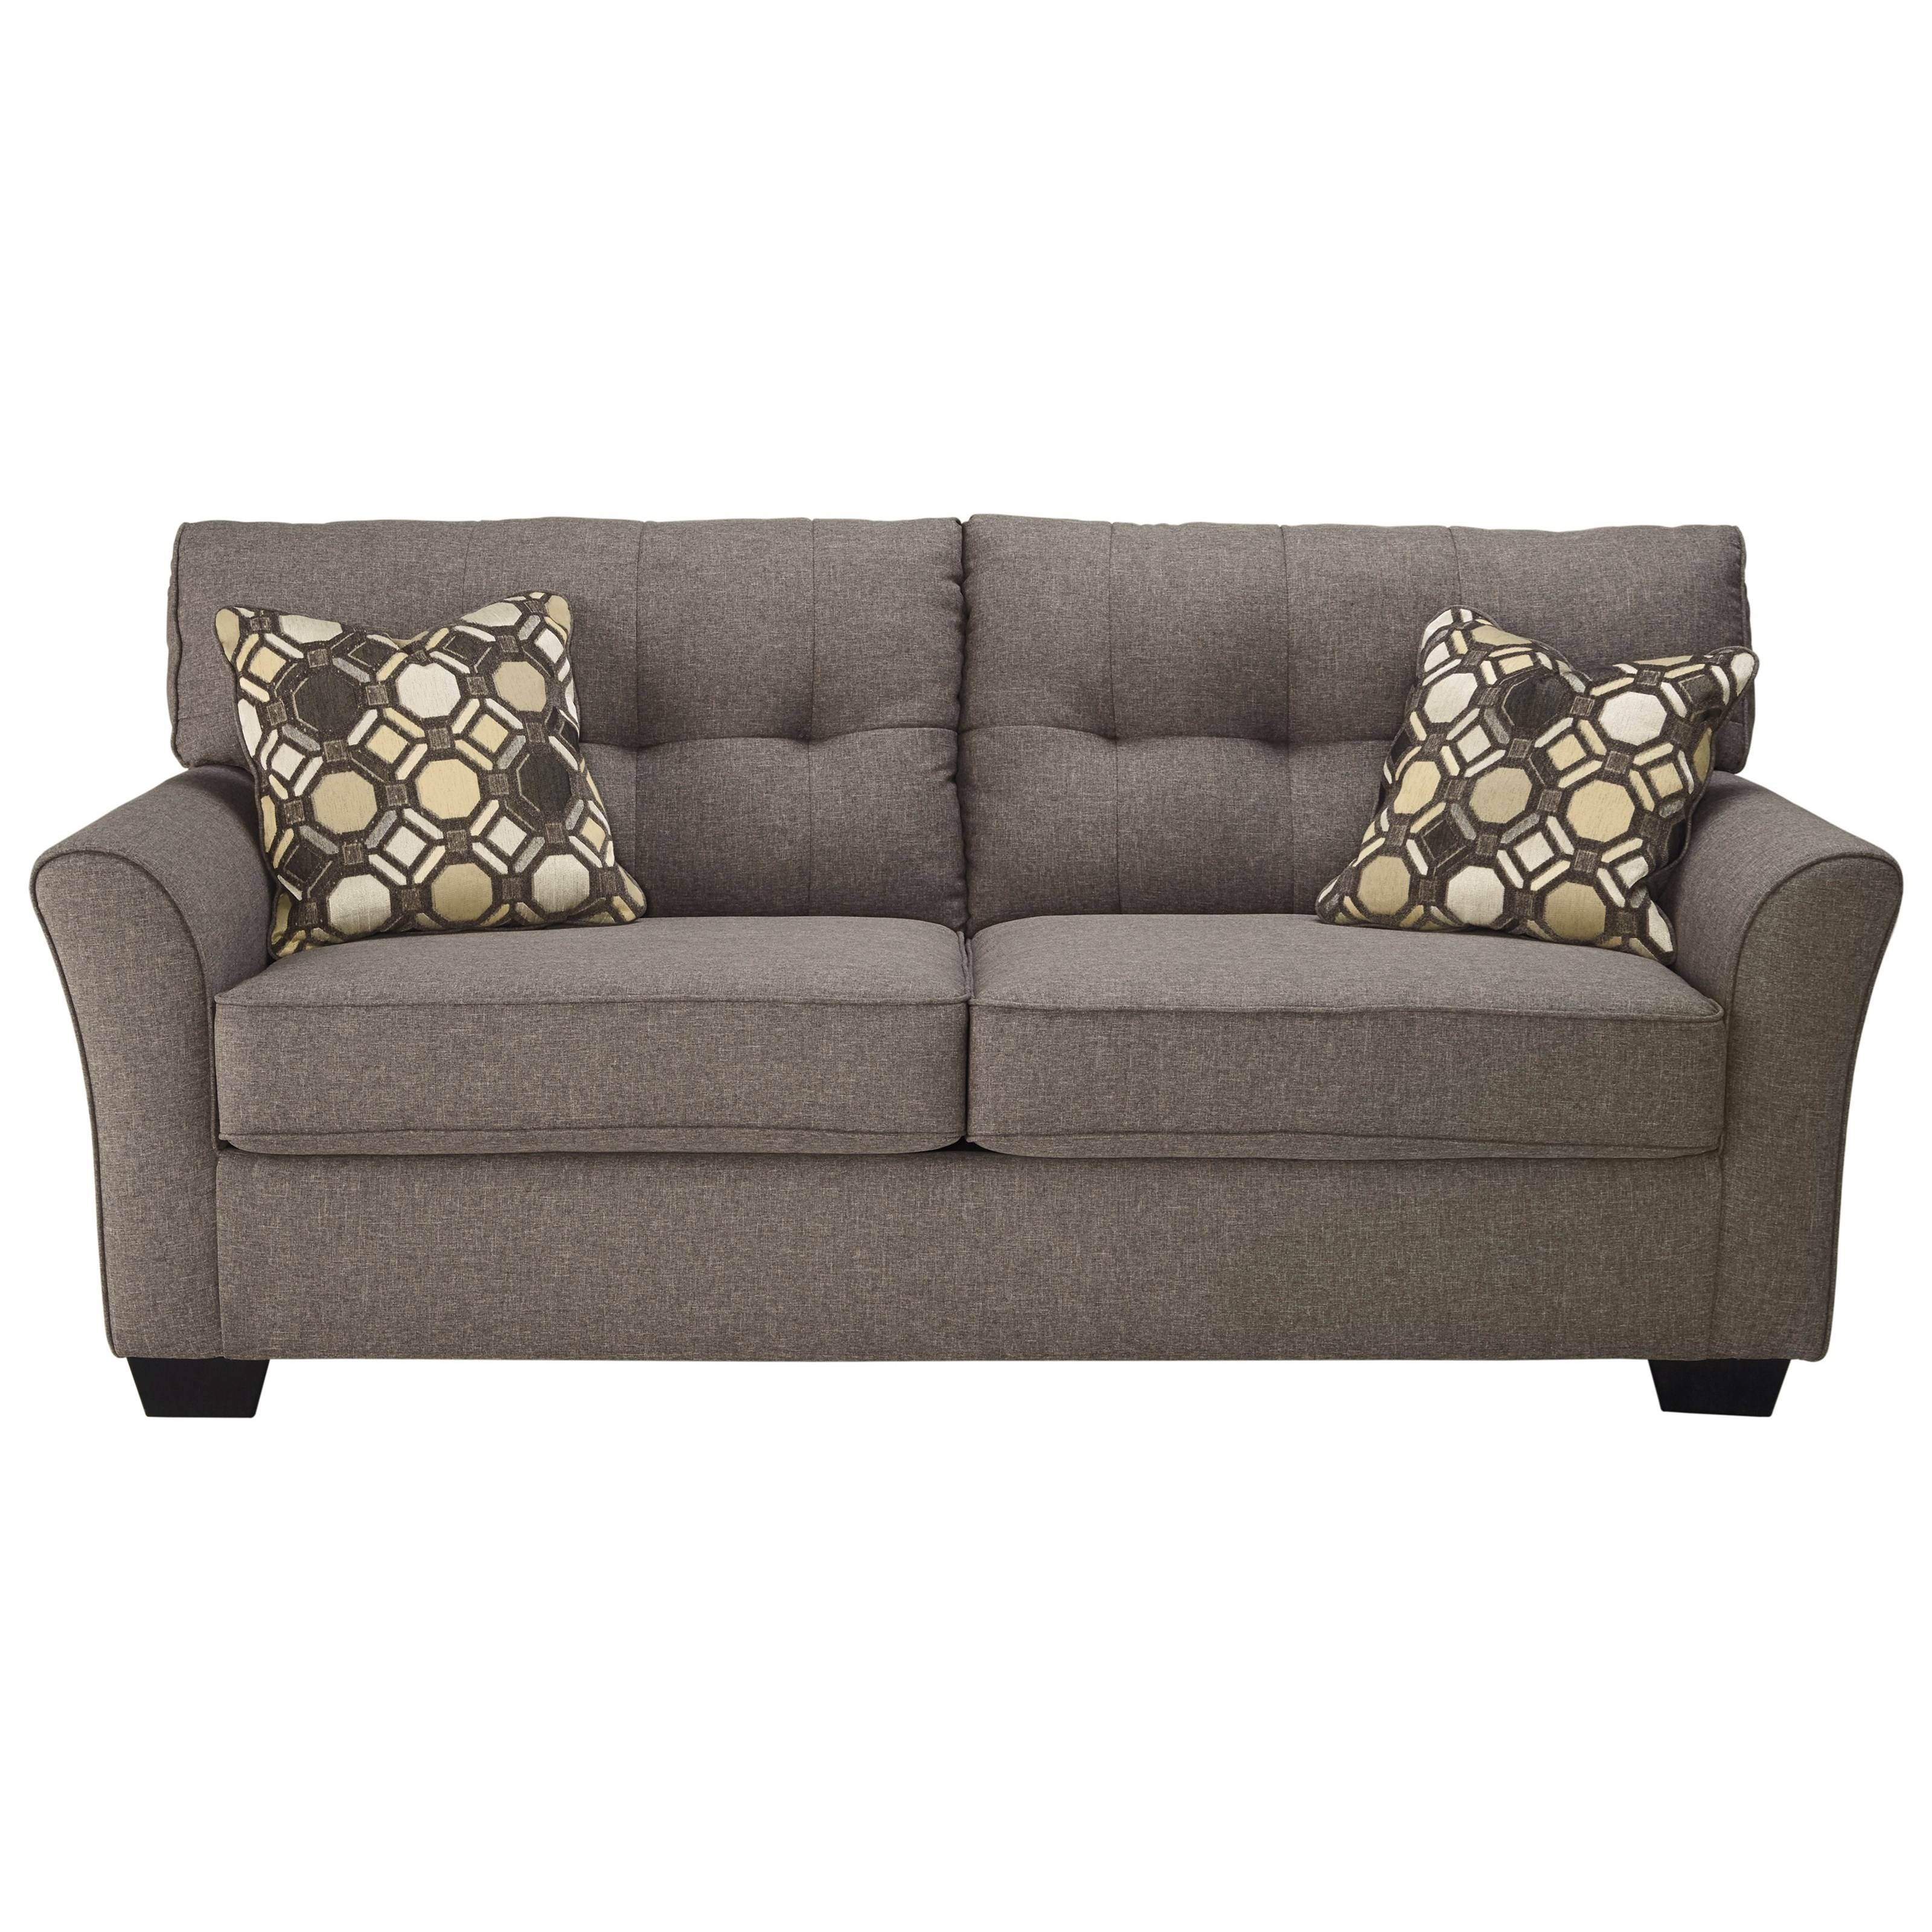 Signature Designashley Tibbee Contemporary Sofa With Tufted pertaining to Ashley Tufted Sofa (Image 21 of 30)